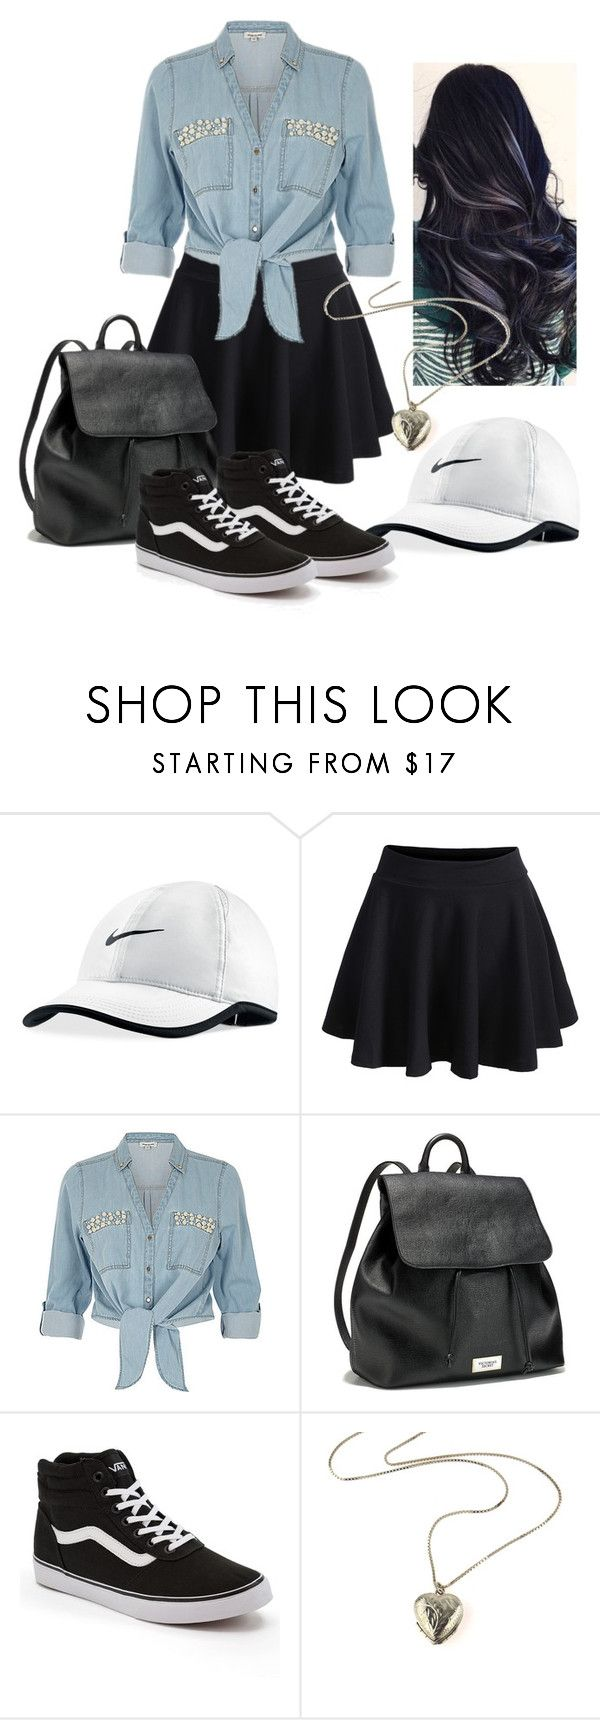 """Travel Outfit"" by mochimchimus on Polyvore featuring NIKE, WithChic, ZAK, Victoria's Secret, Vans and country"